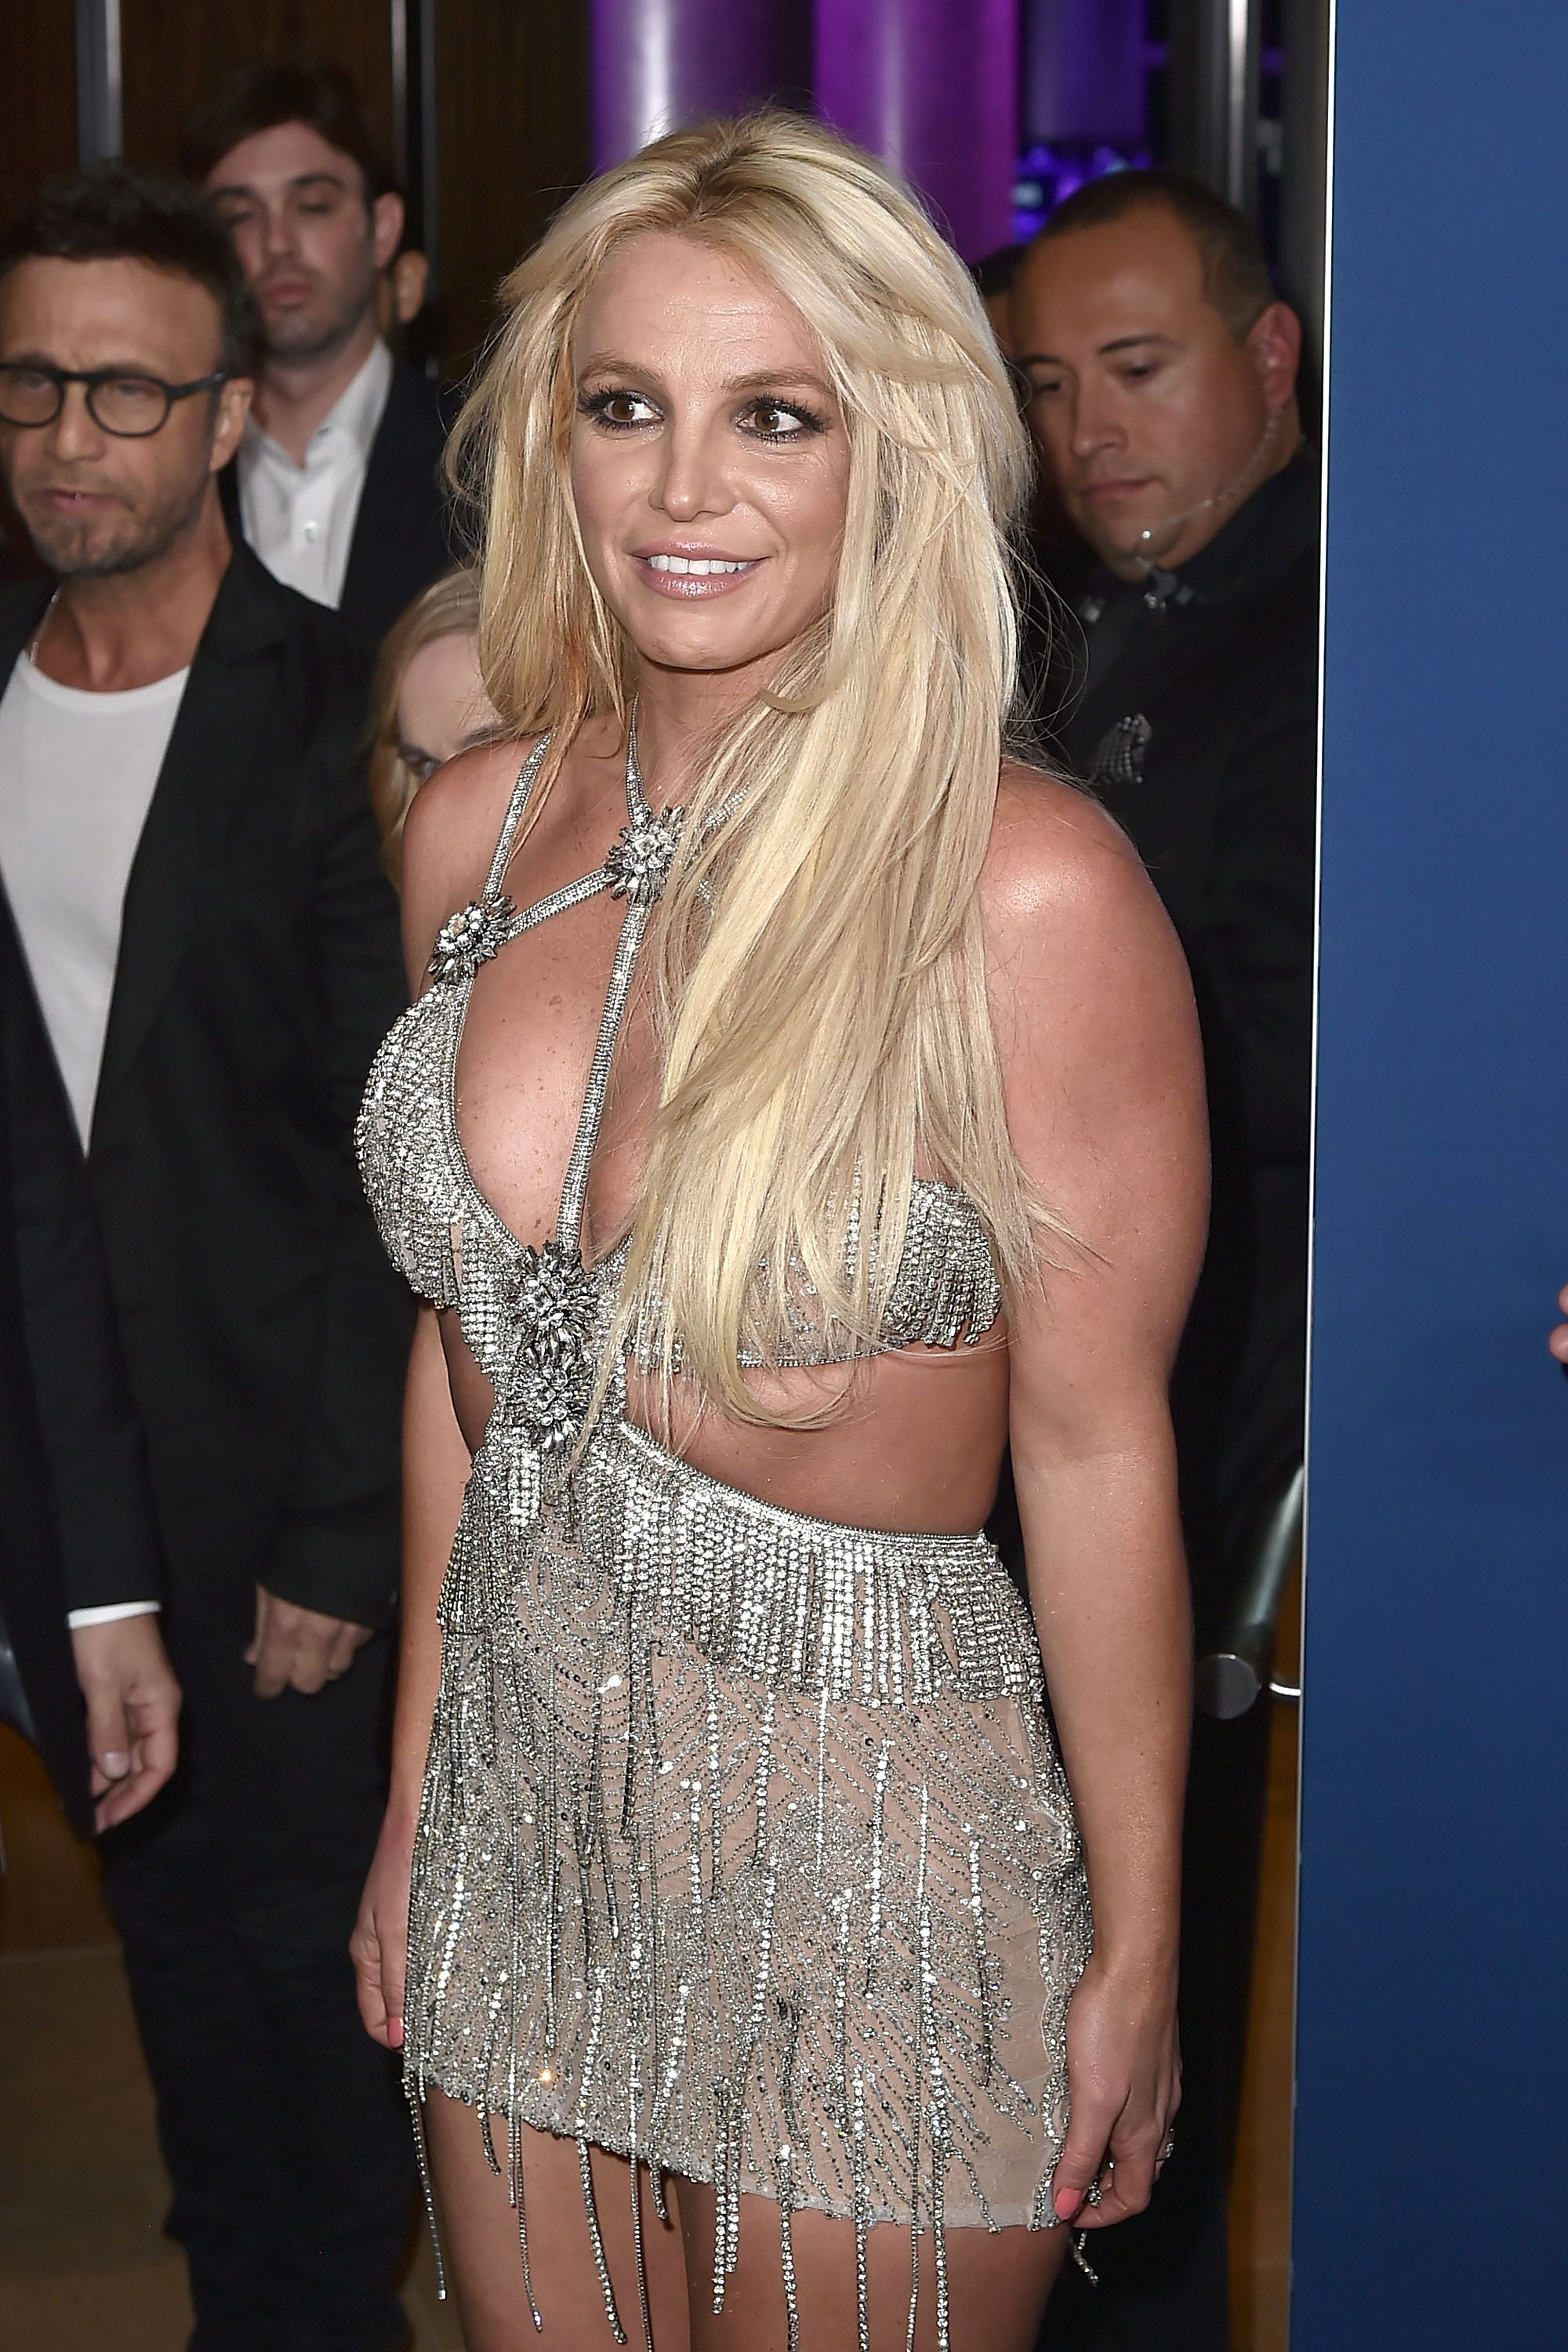 Photo of Britney Spears Succumbed to Quarantine and Cut Her Own Bangs